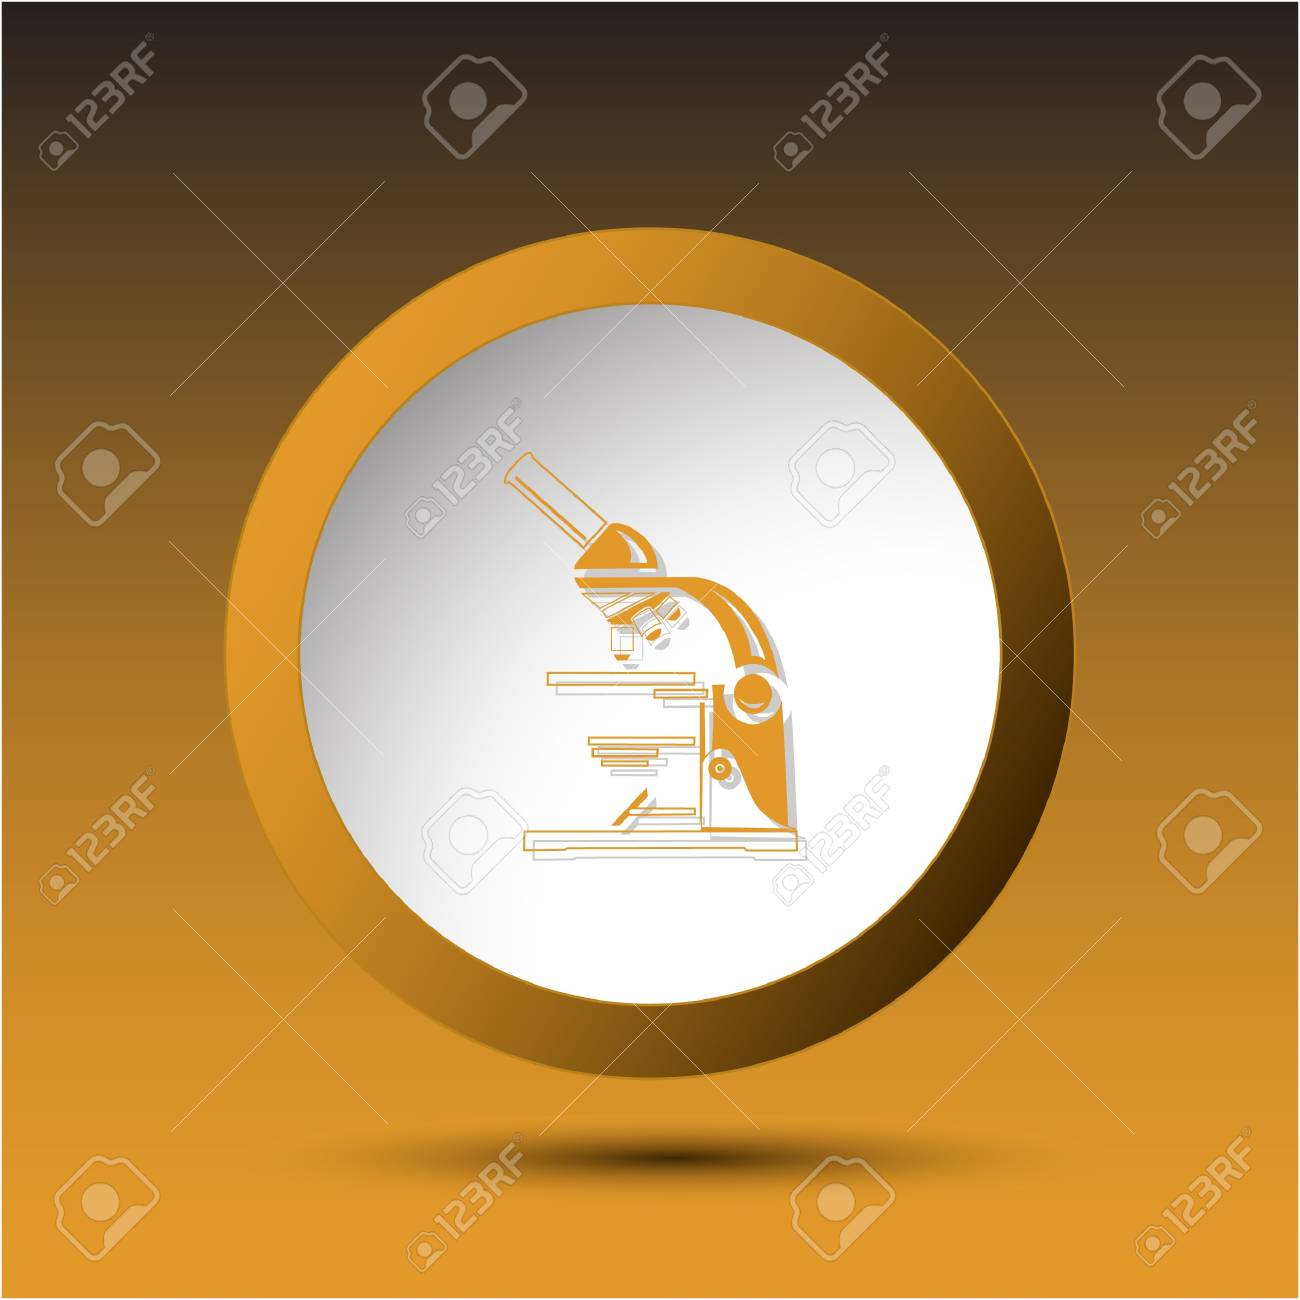 Lab microscope. Plastic button. Vector illustration. Stock Illustration - 17833514